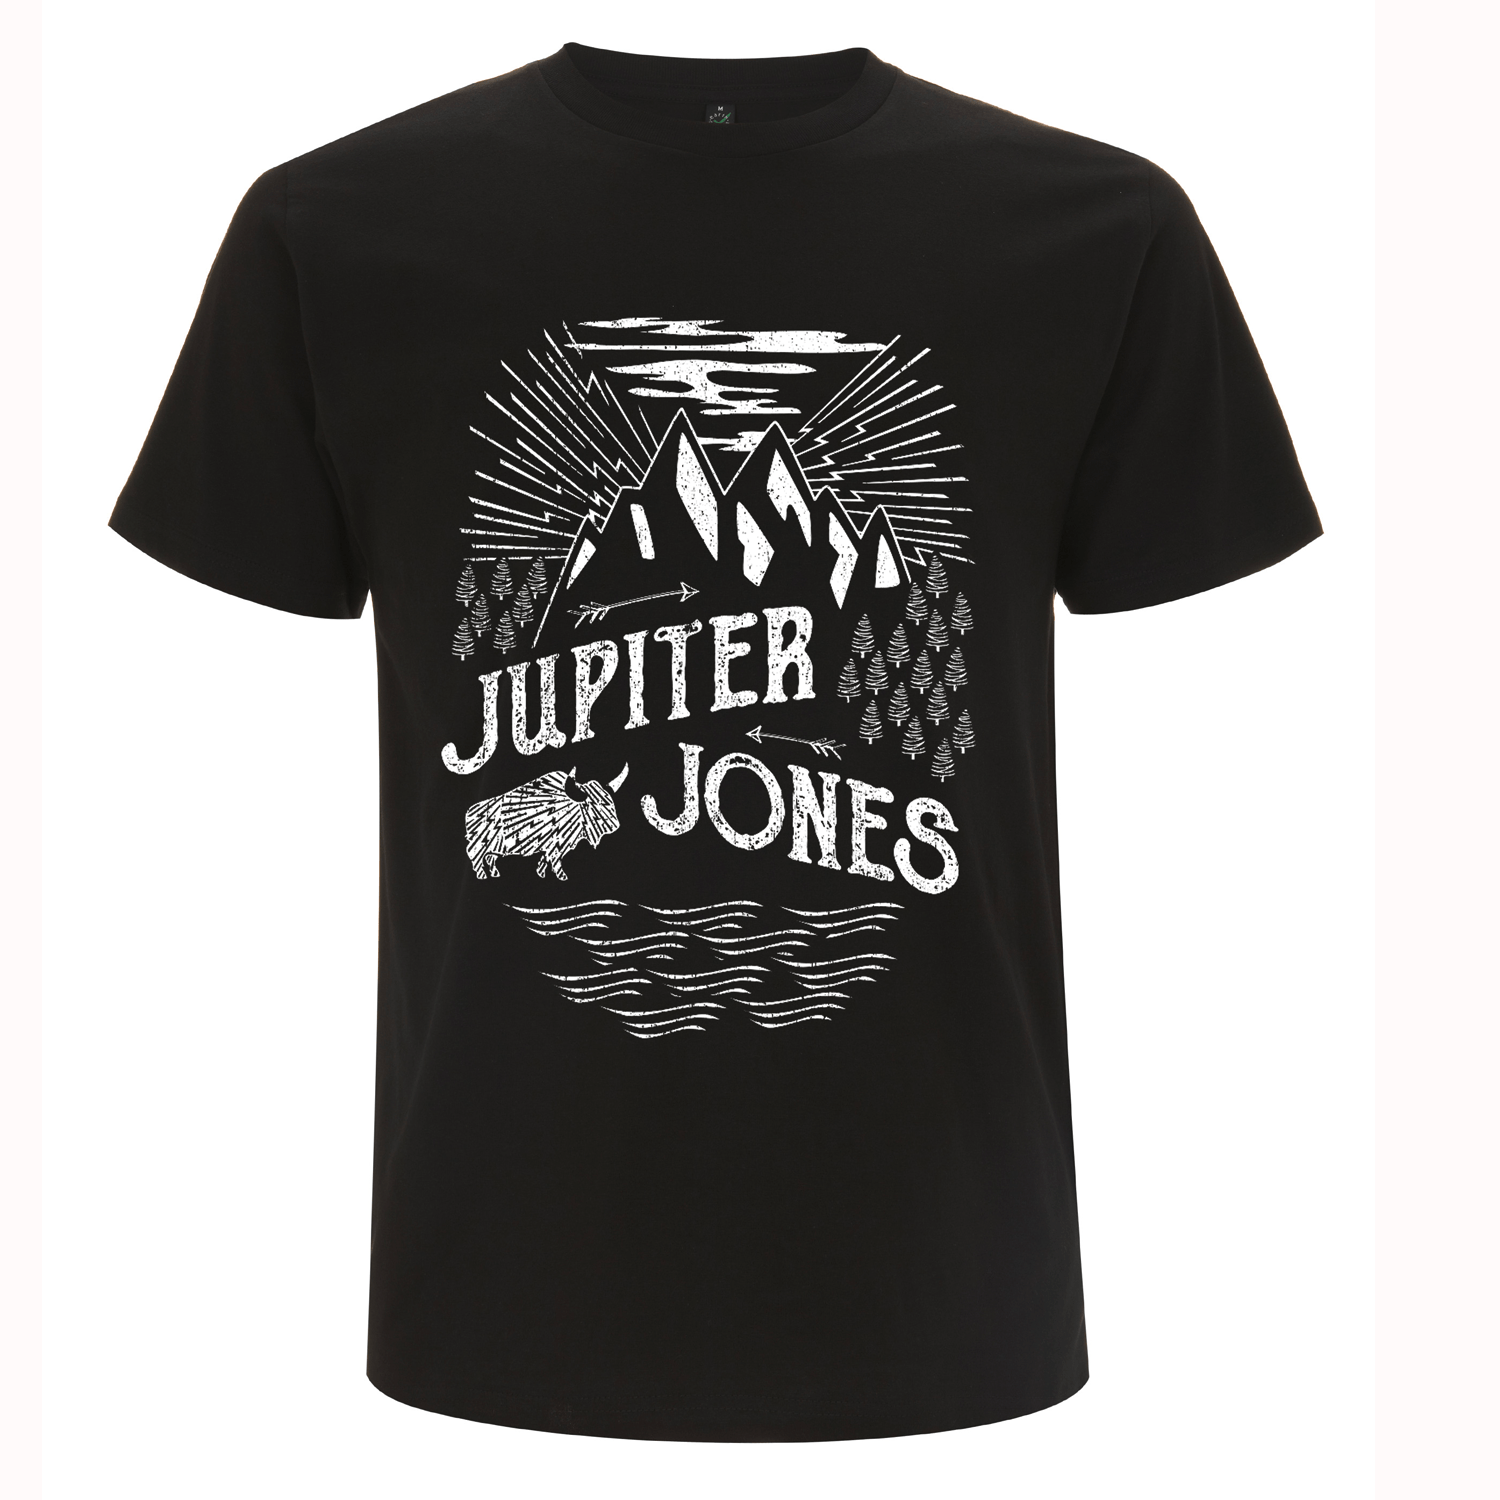 Jupiter Jones Bison Shirt Shirt schwarz